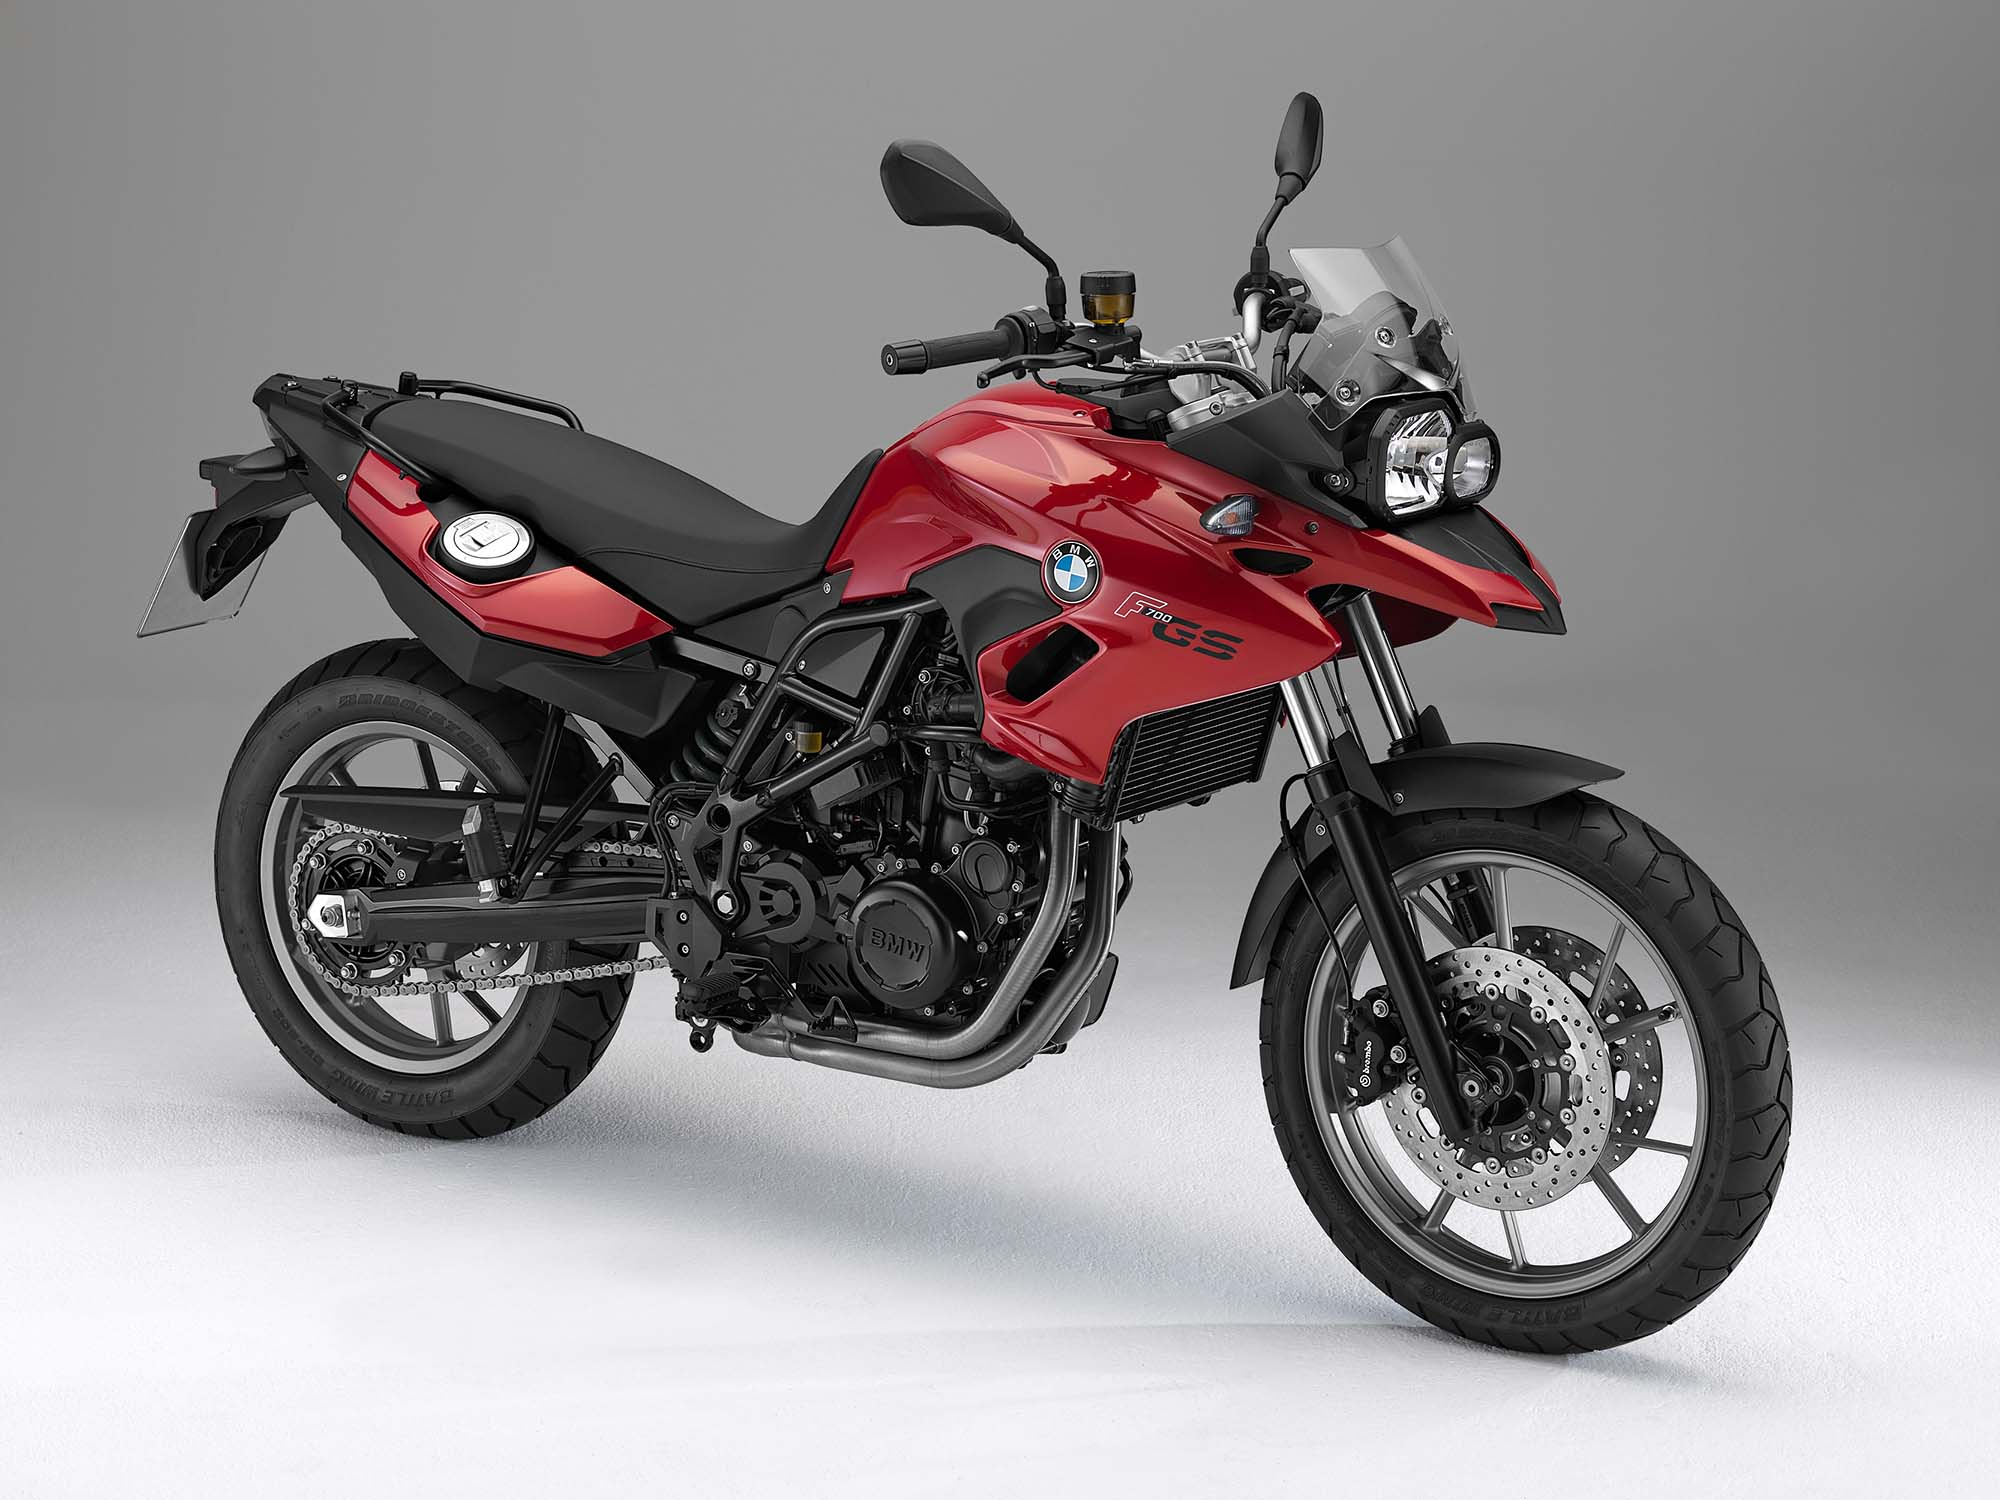 2013 bmw f700gs breaks cover asphalt rubber. Black Bedroom Furniture Sets. Home Design Ideas